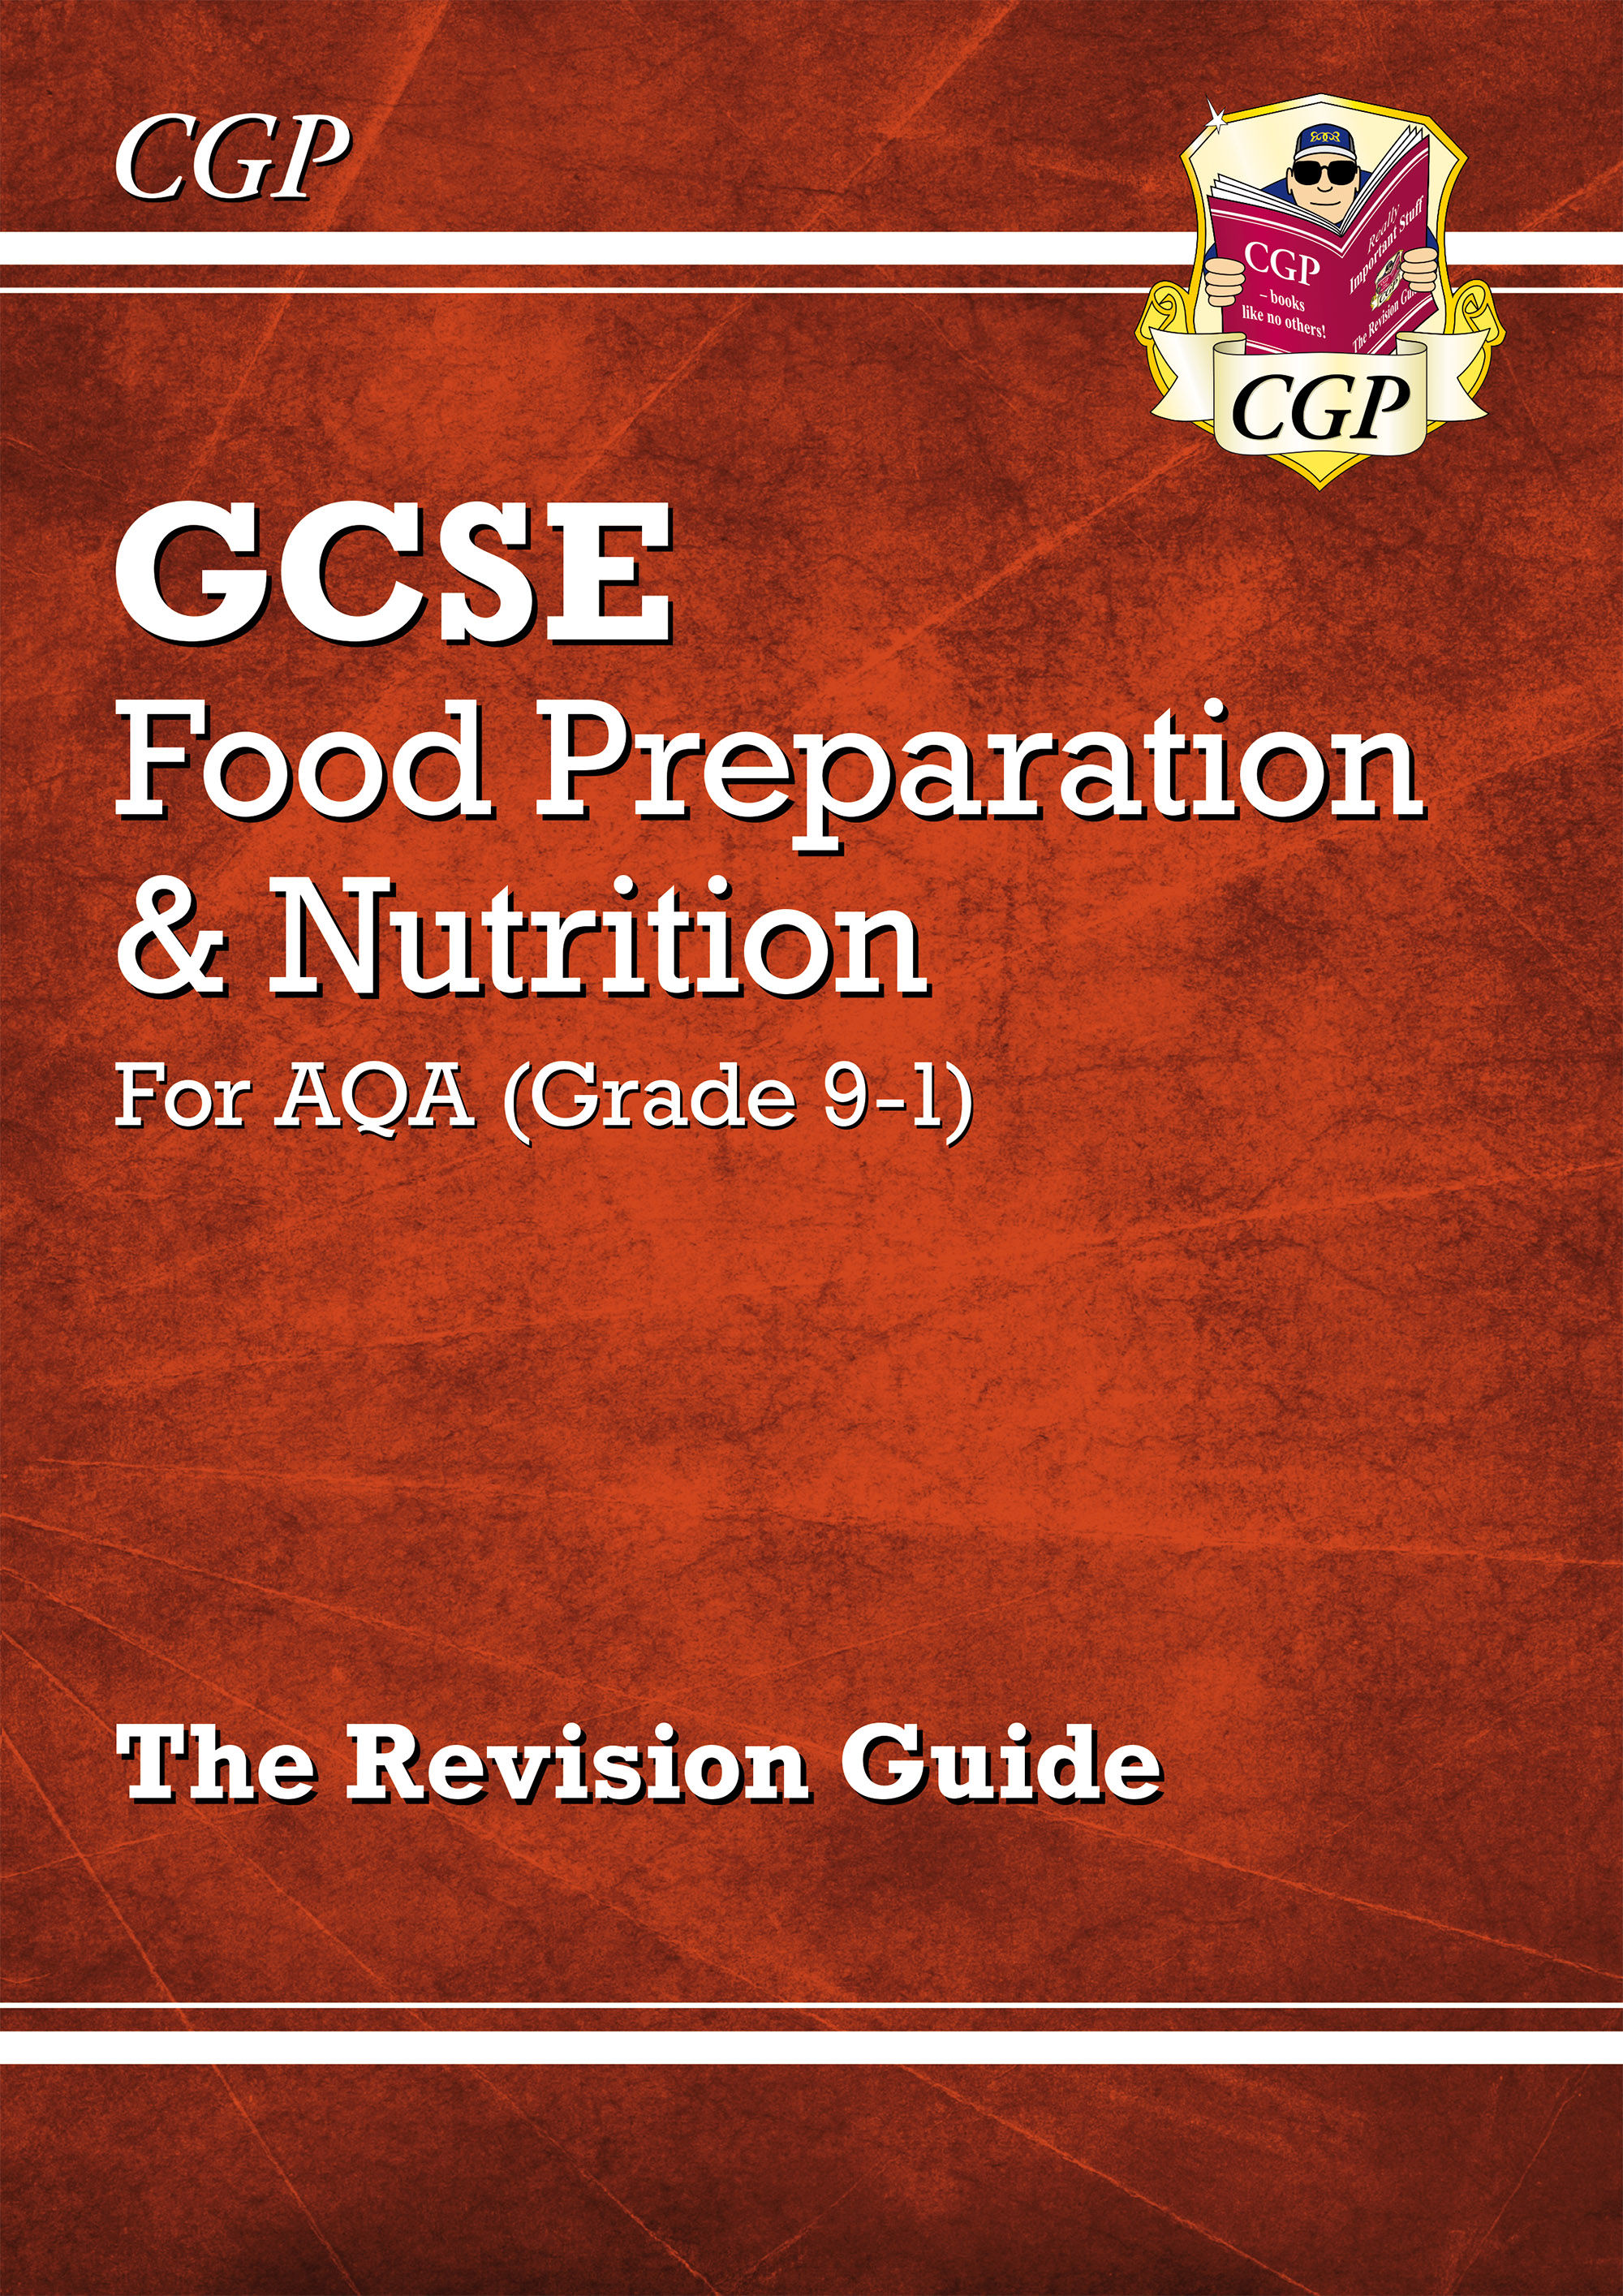 FNAR41DK - New Grade 9-1 GCSE Food Preparation & Nutrition - AQA Revision Guide